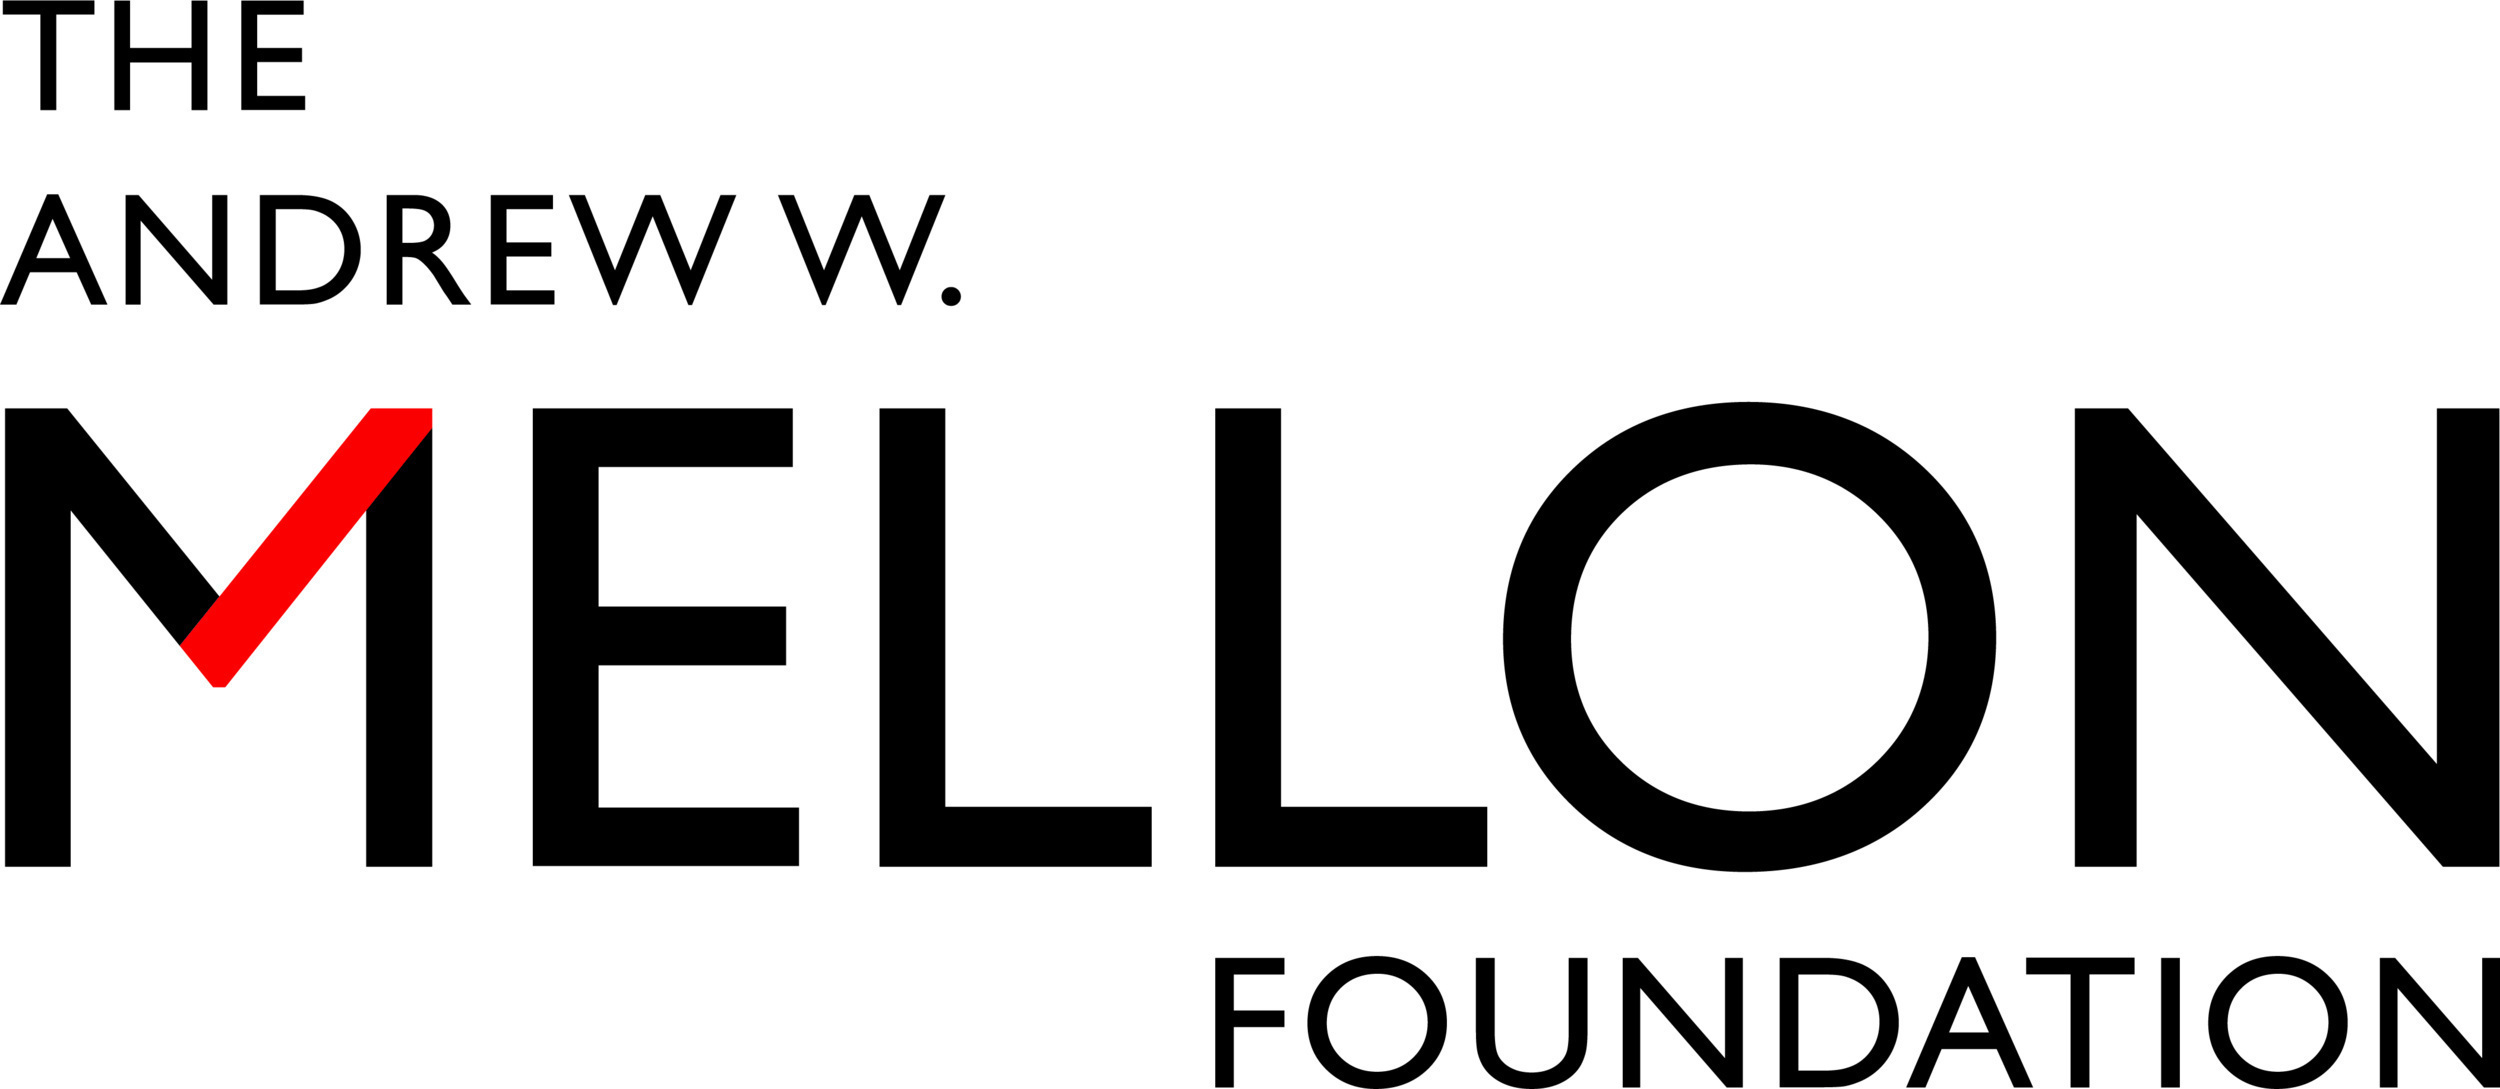 Mellon-black-red-logo-transparent.jpg